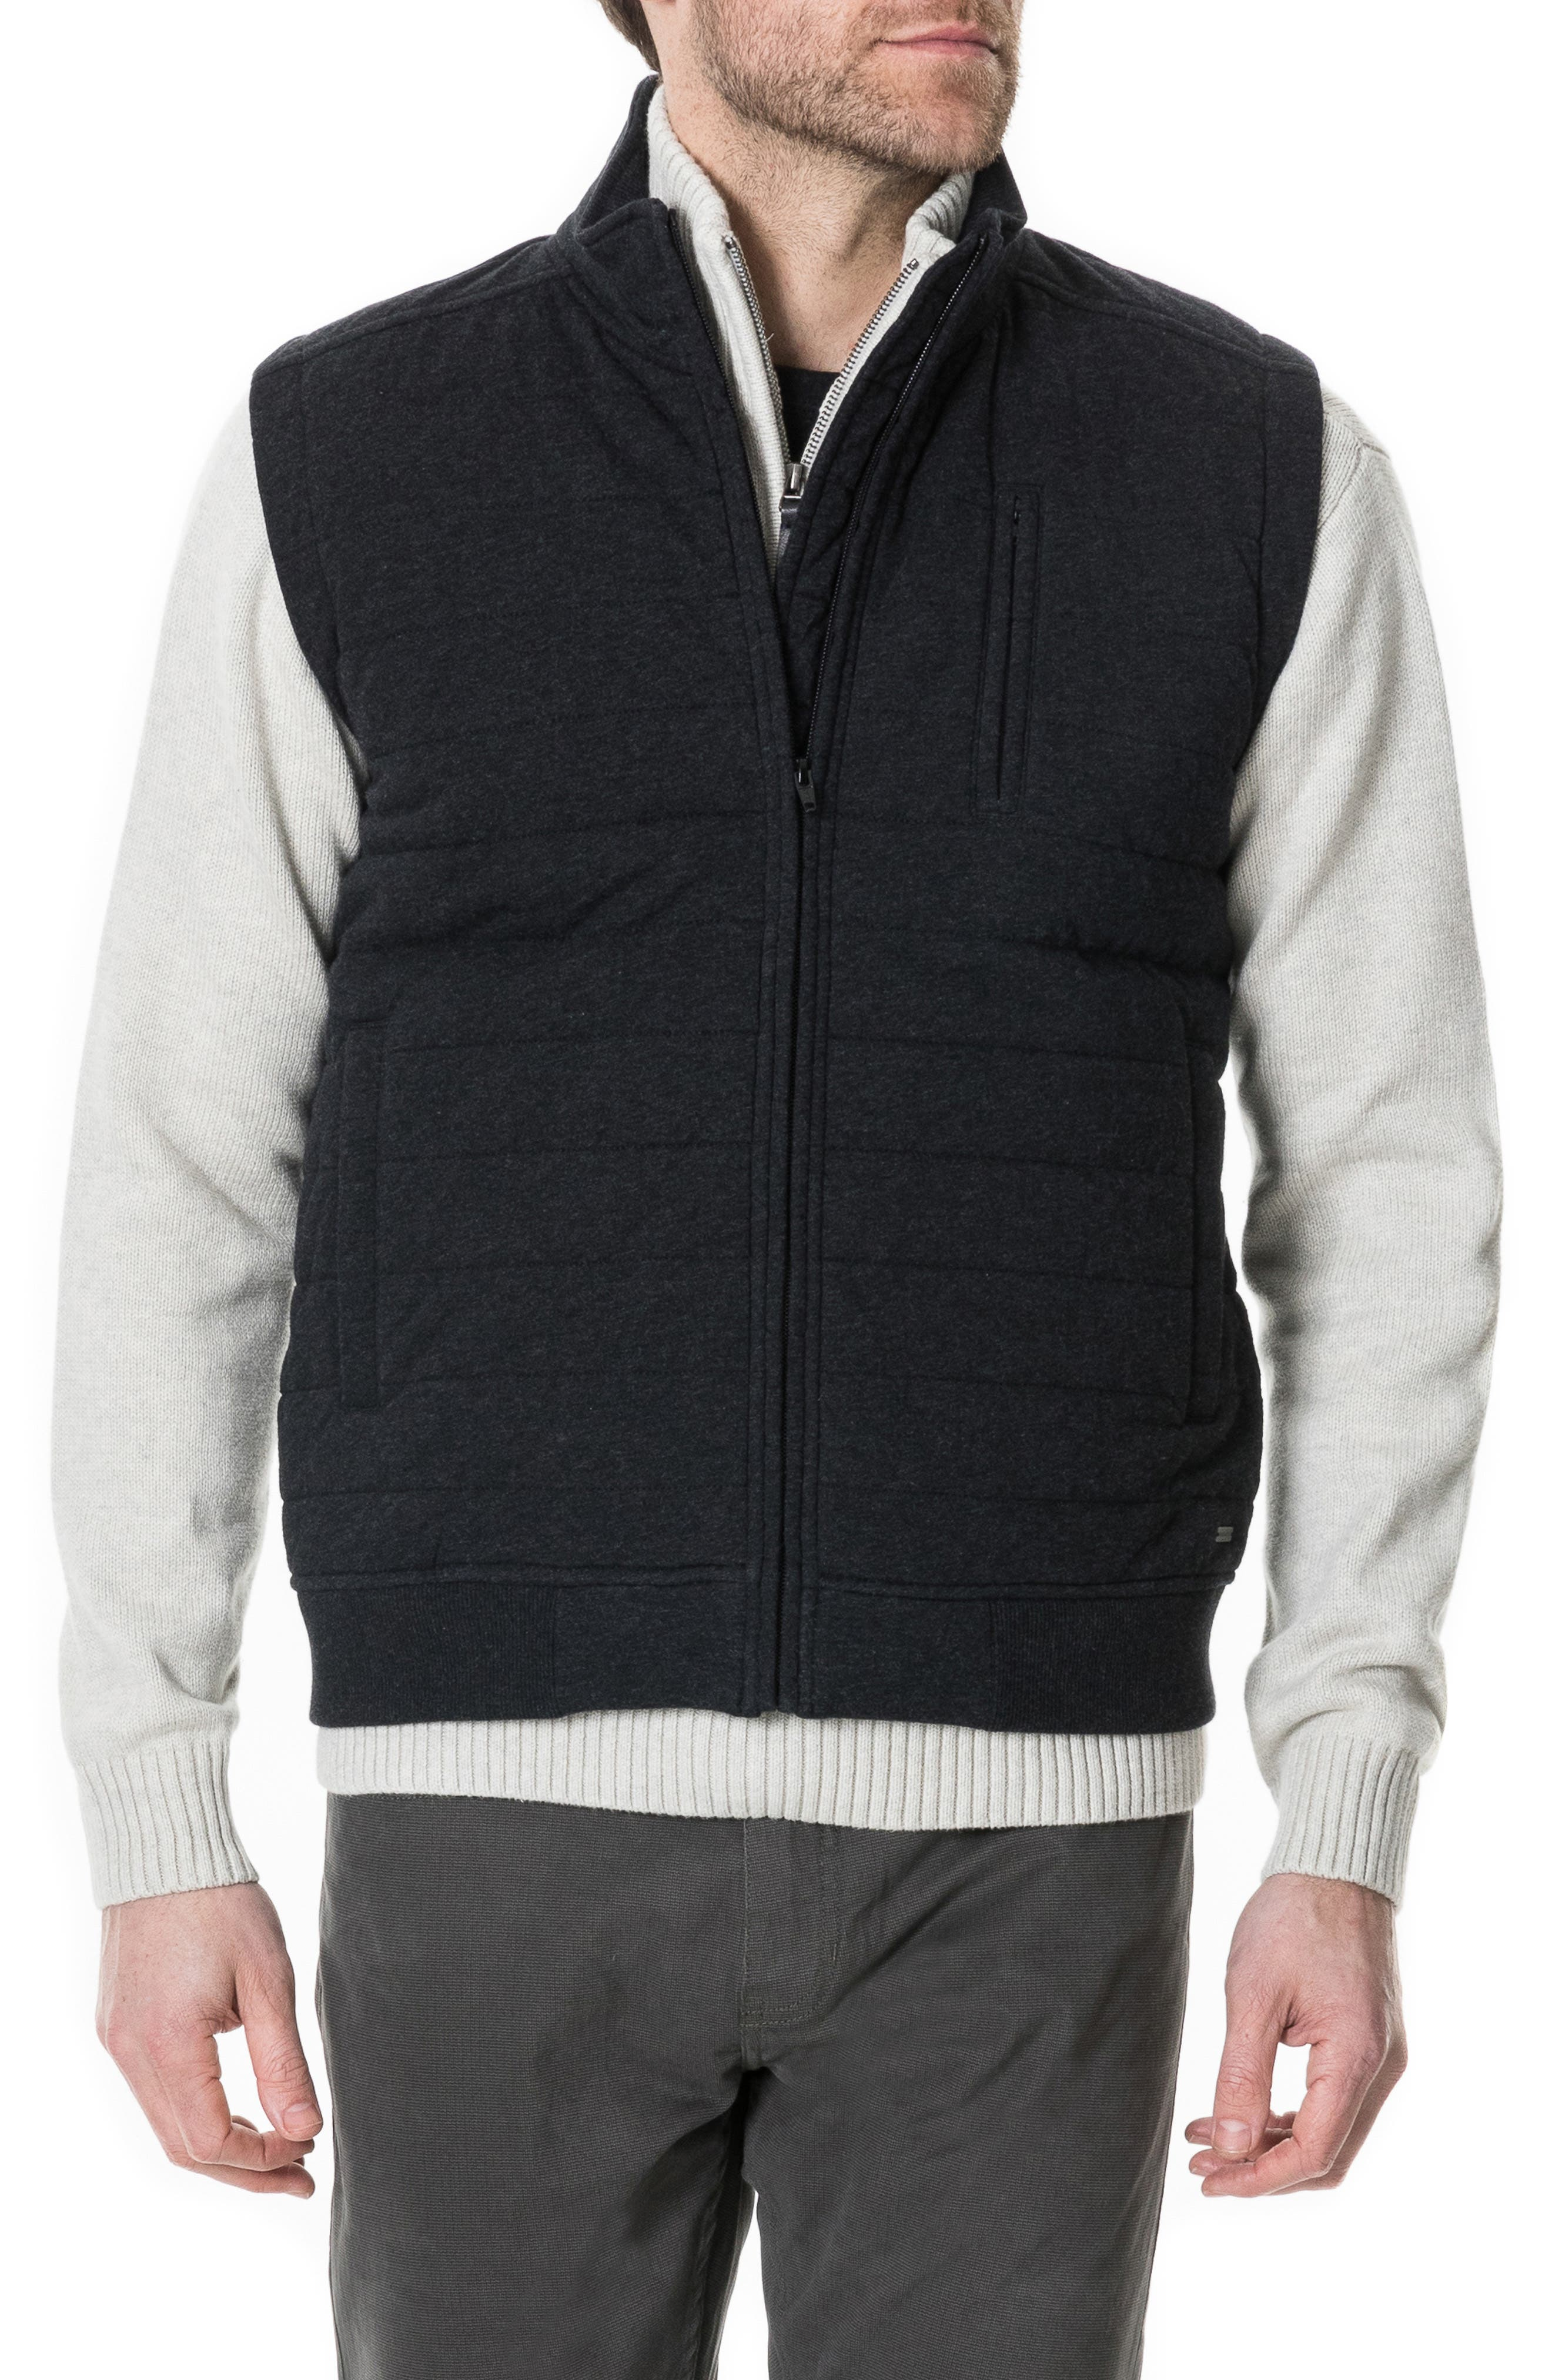 Gould Road Quilted Cotton Flannel Vest,                         Main,                         color, 020